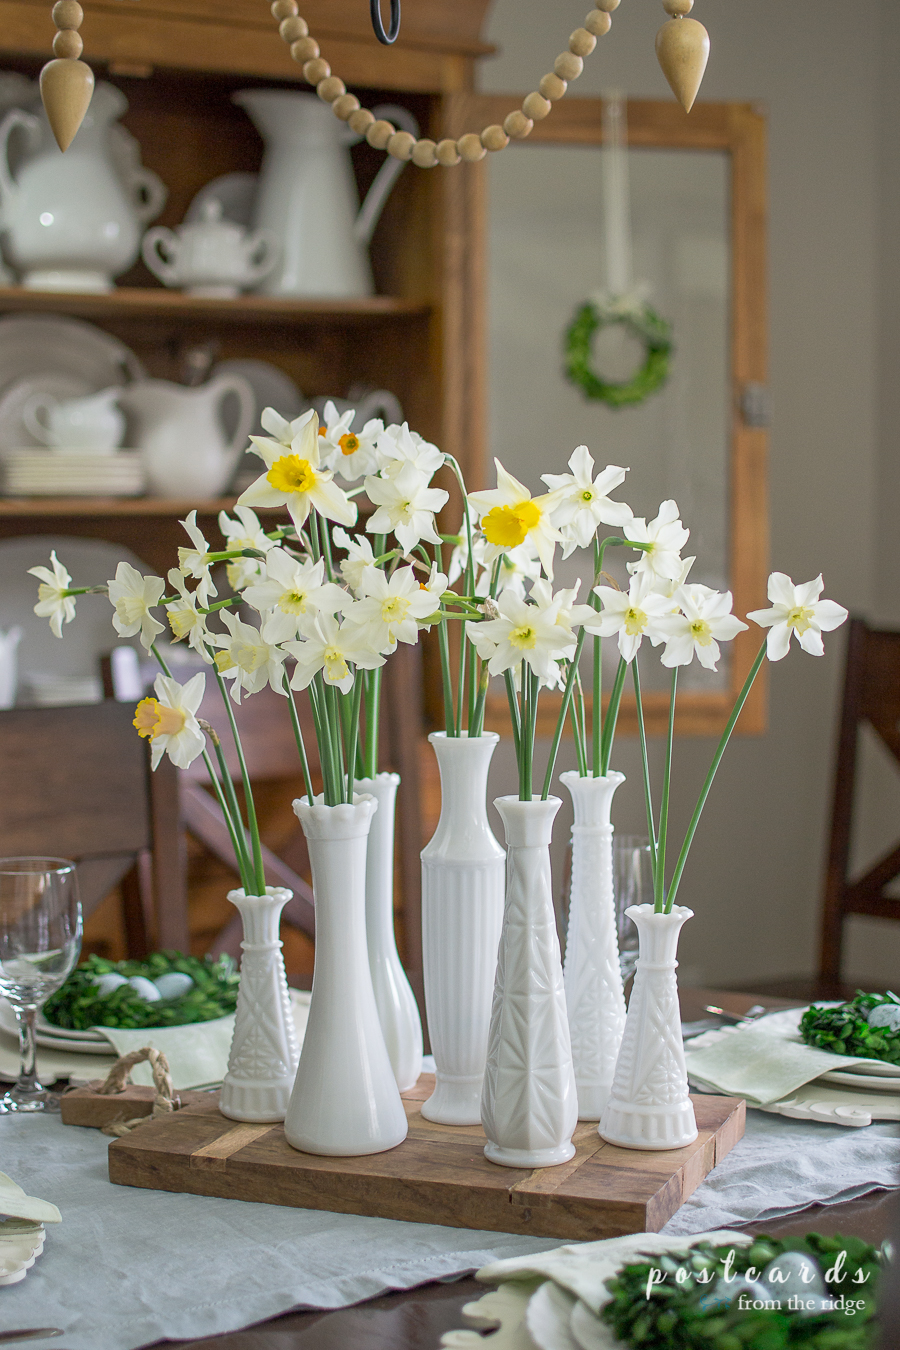 milk glass vases with daffodils